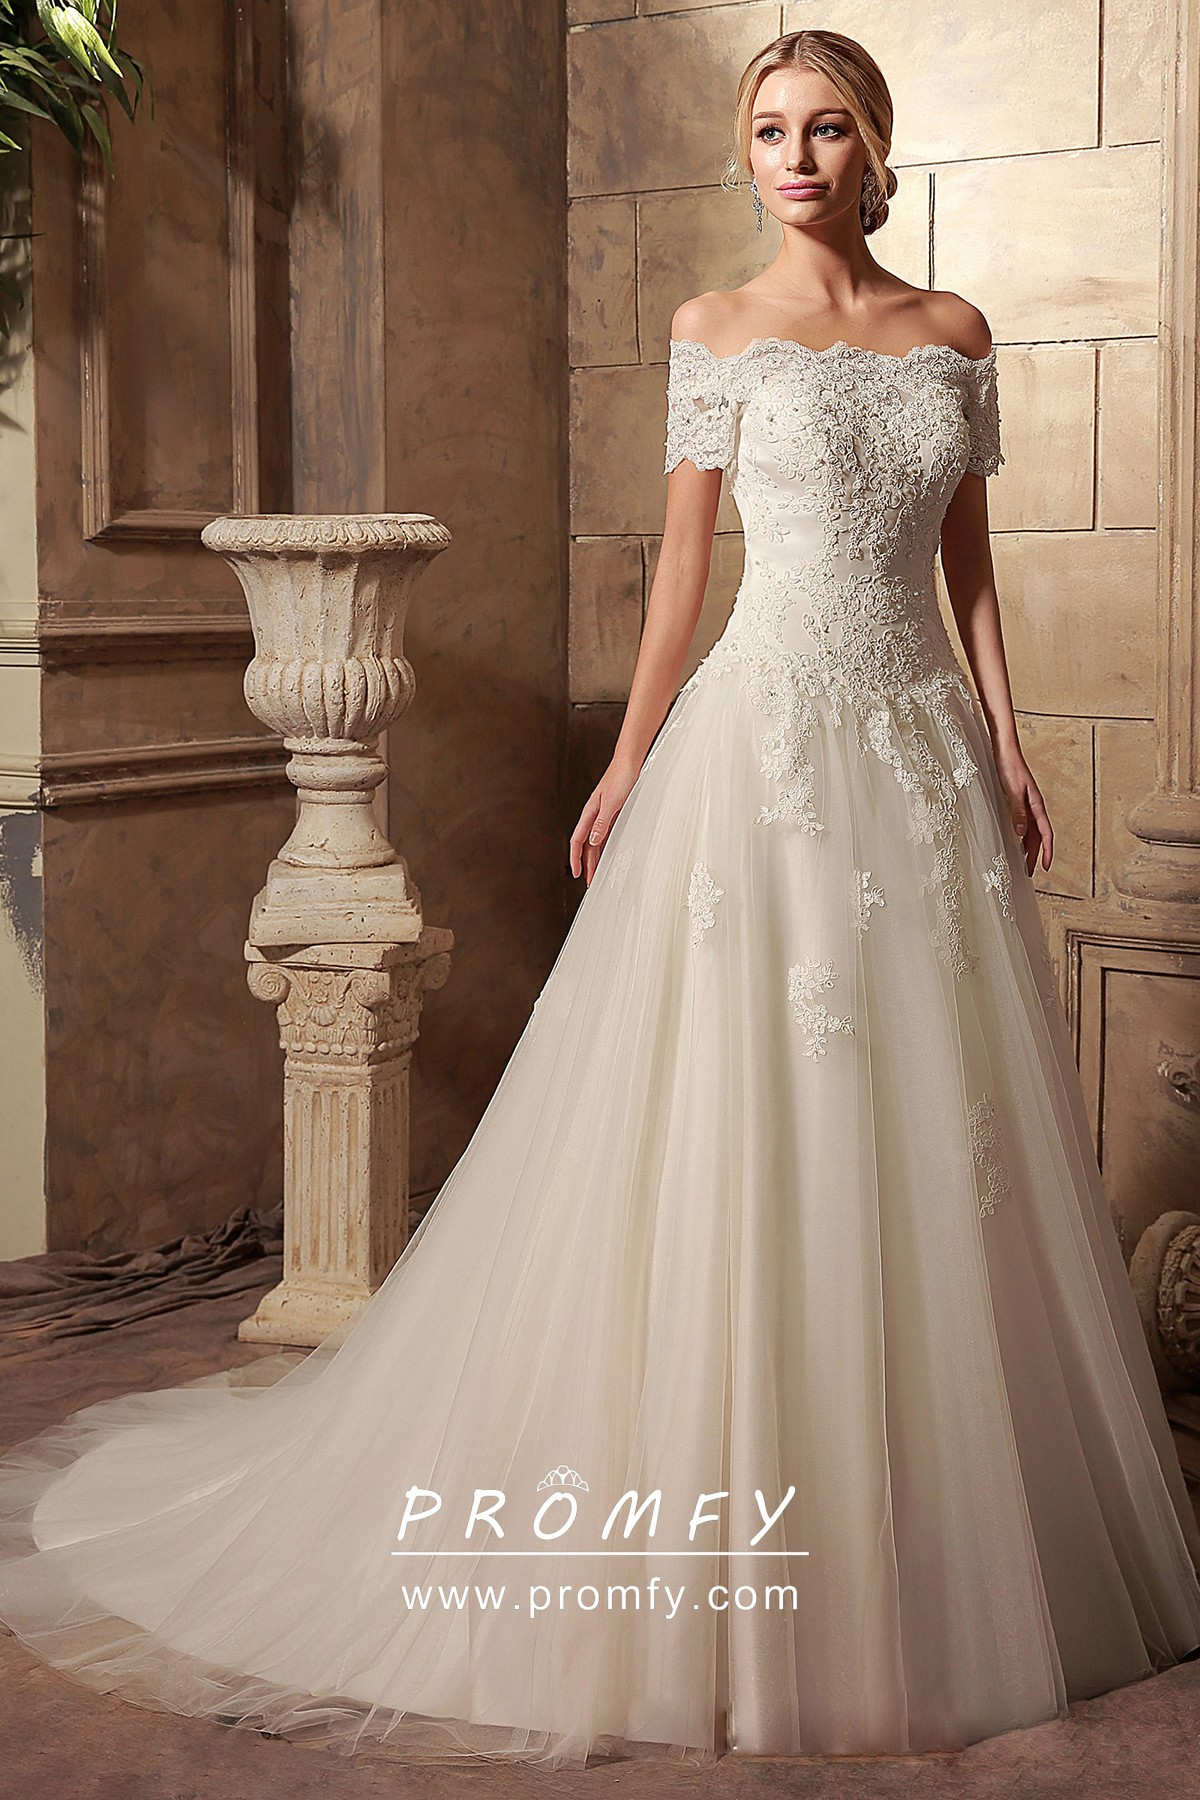 Scalloped Lace Short Sleeve Ball Gown Wedding Dress Promfy